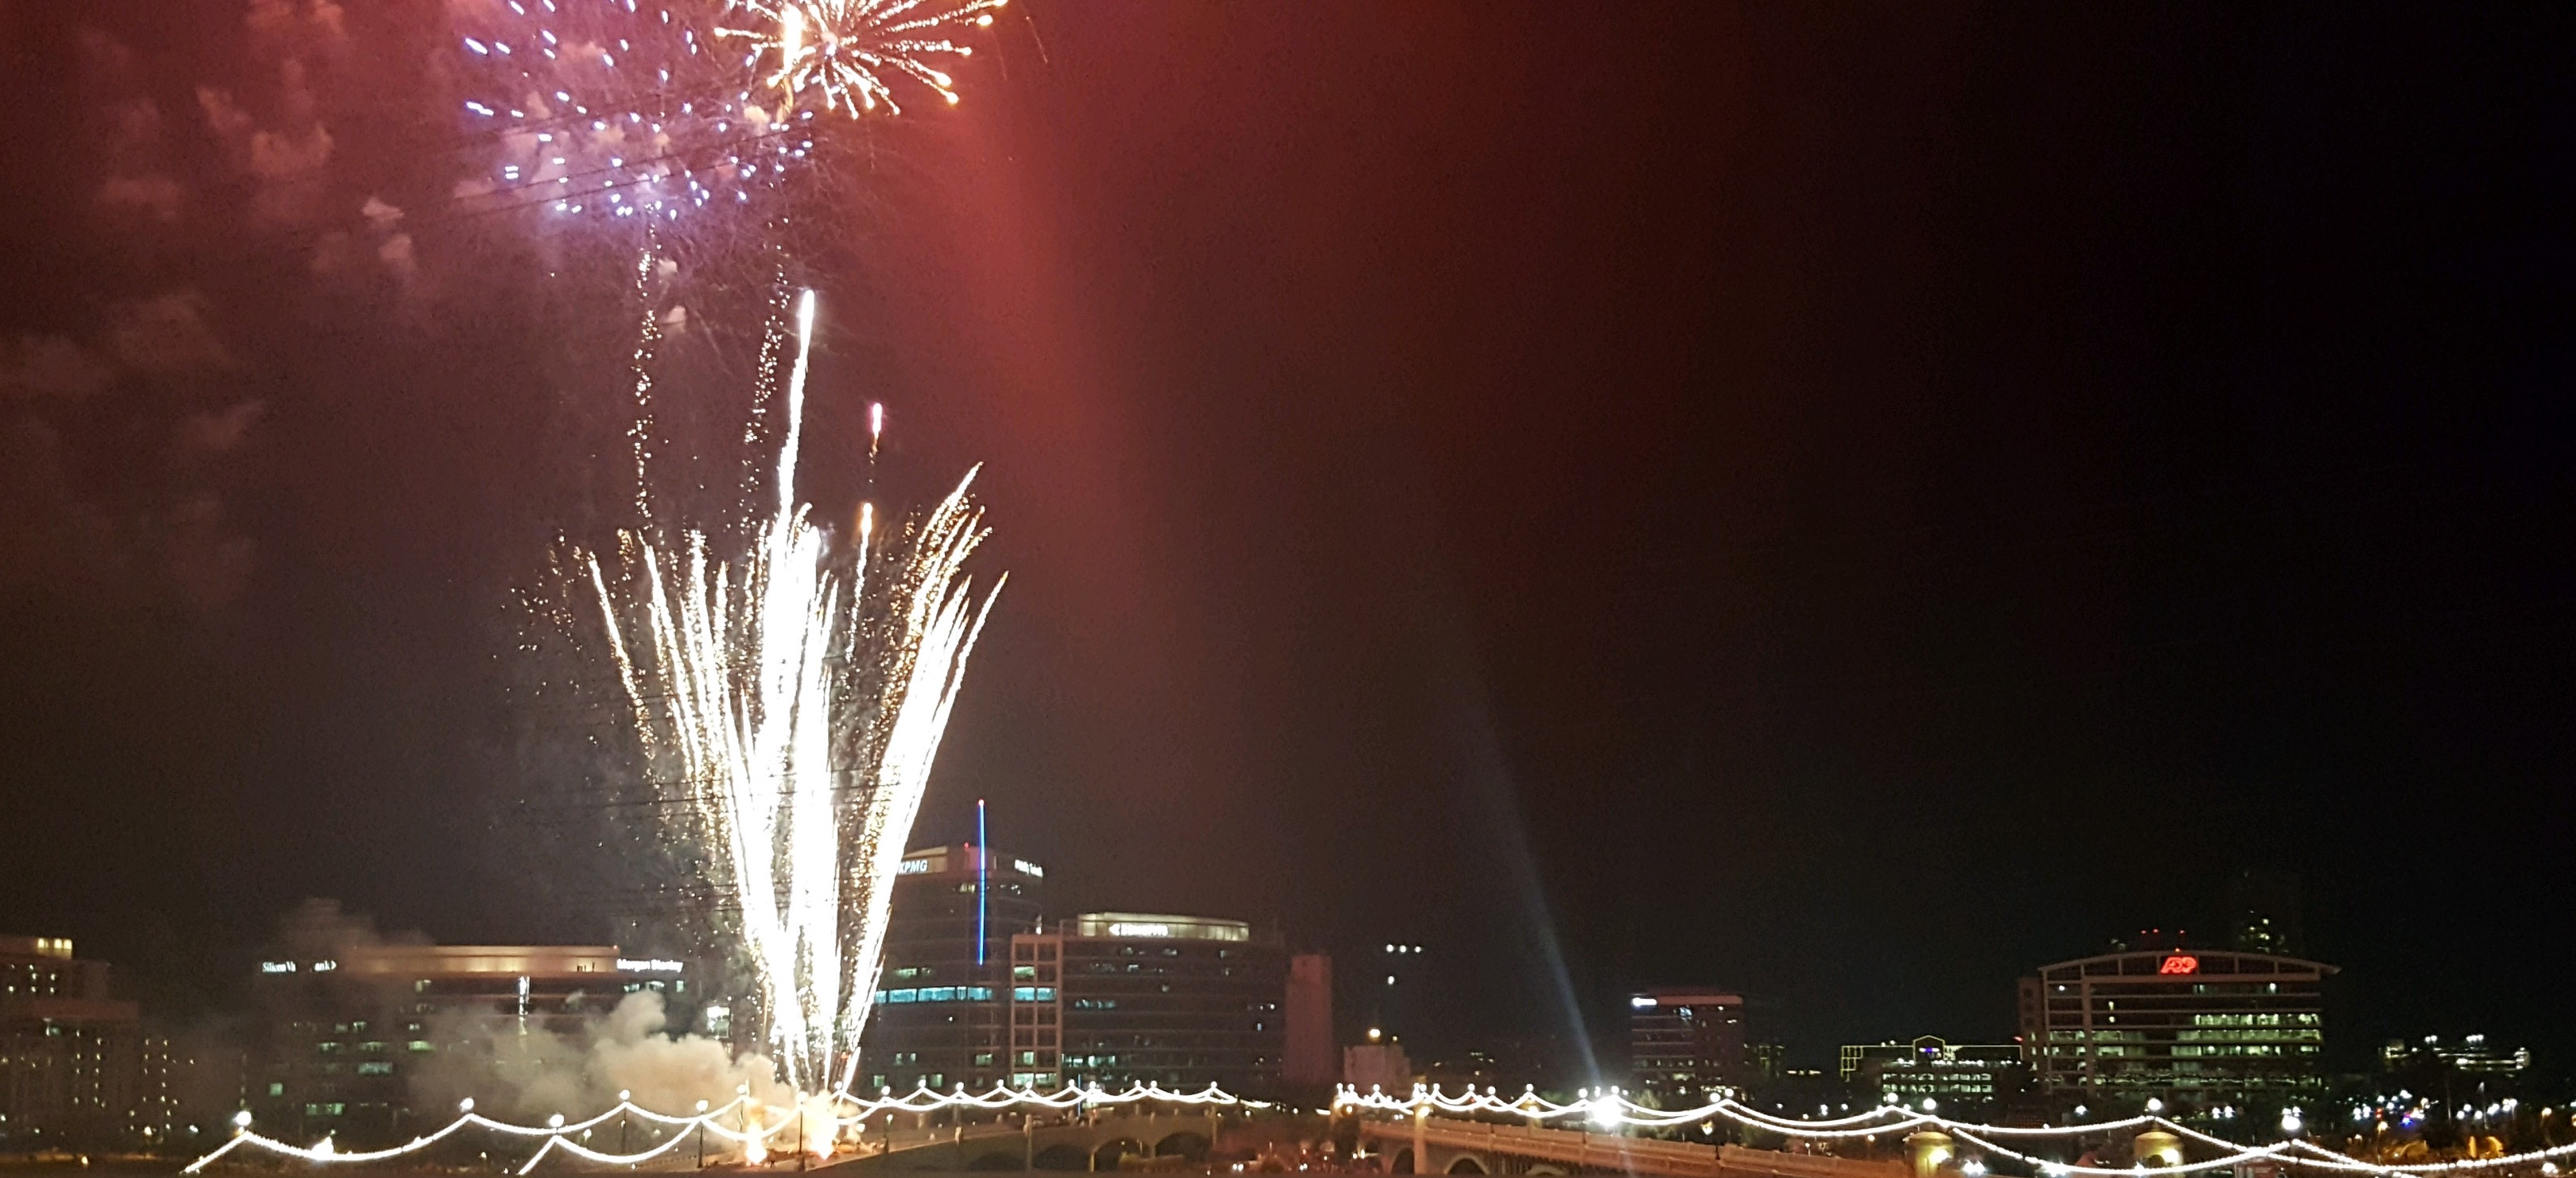 Tempe at night on the 4th of July